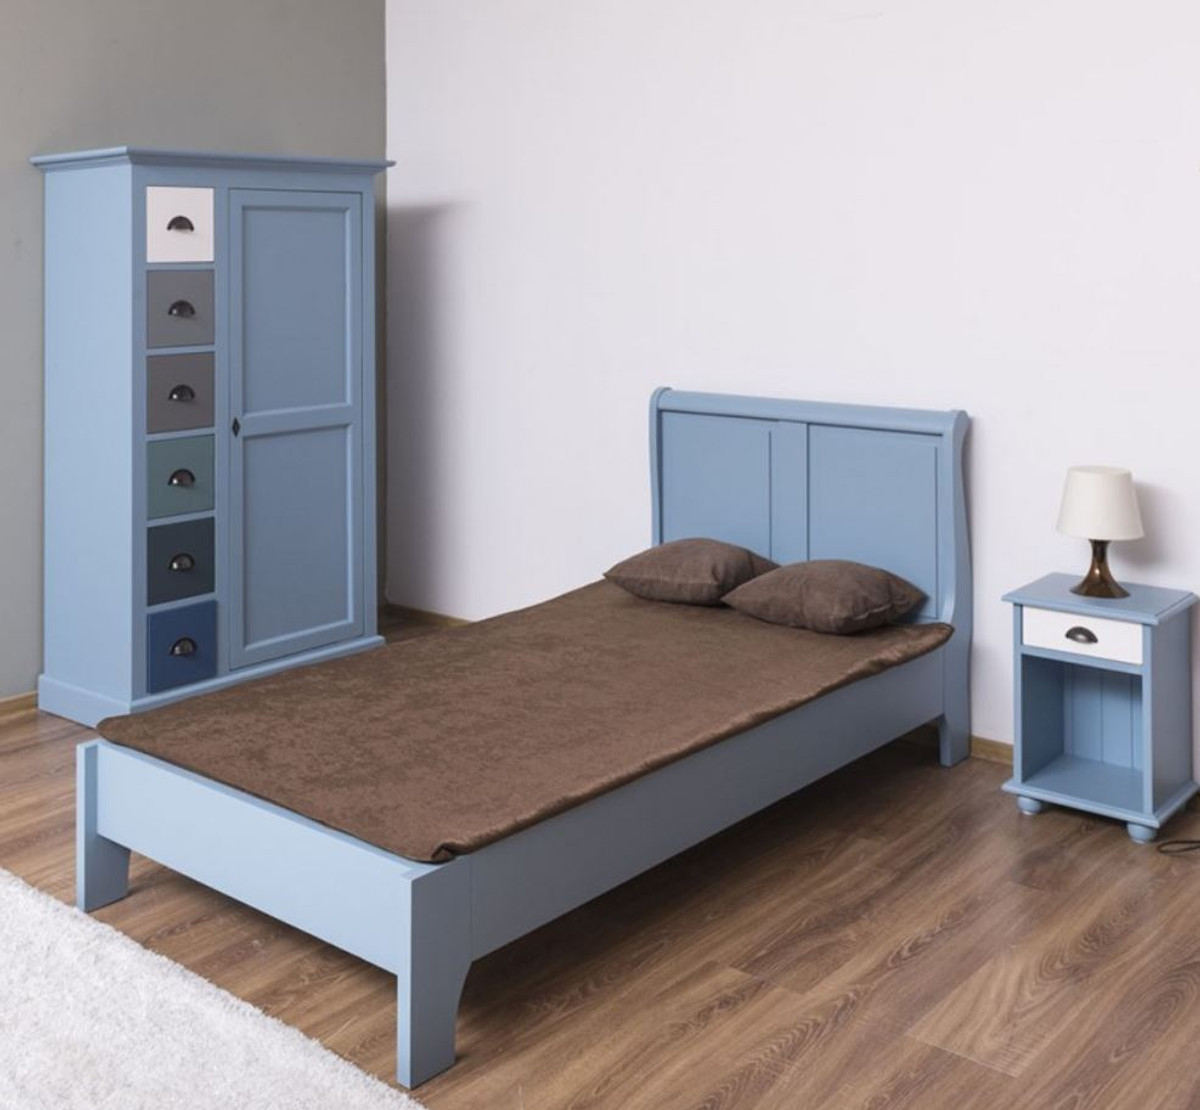 Casa Padrino Country Style Solid Wood Children S Room Furniture Set Light Blue White Multicolor 1 Single Bed 1 Wardrobe 1 Bedside Table Country Style Furniture